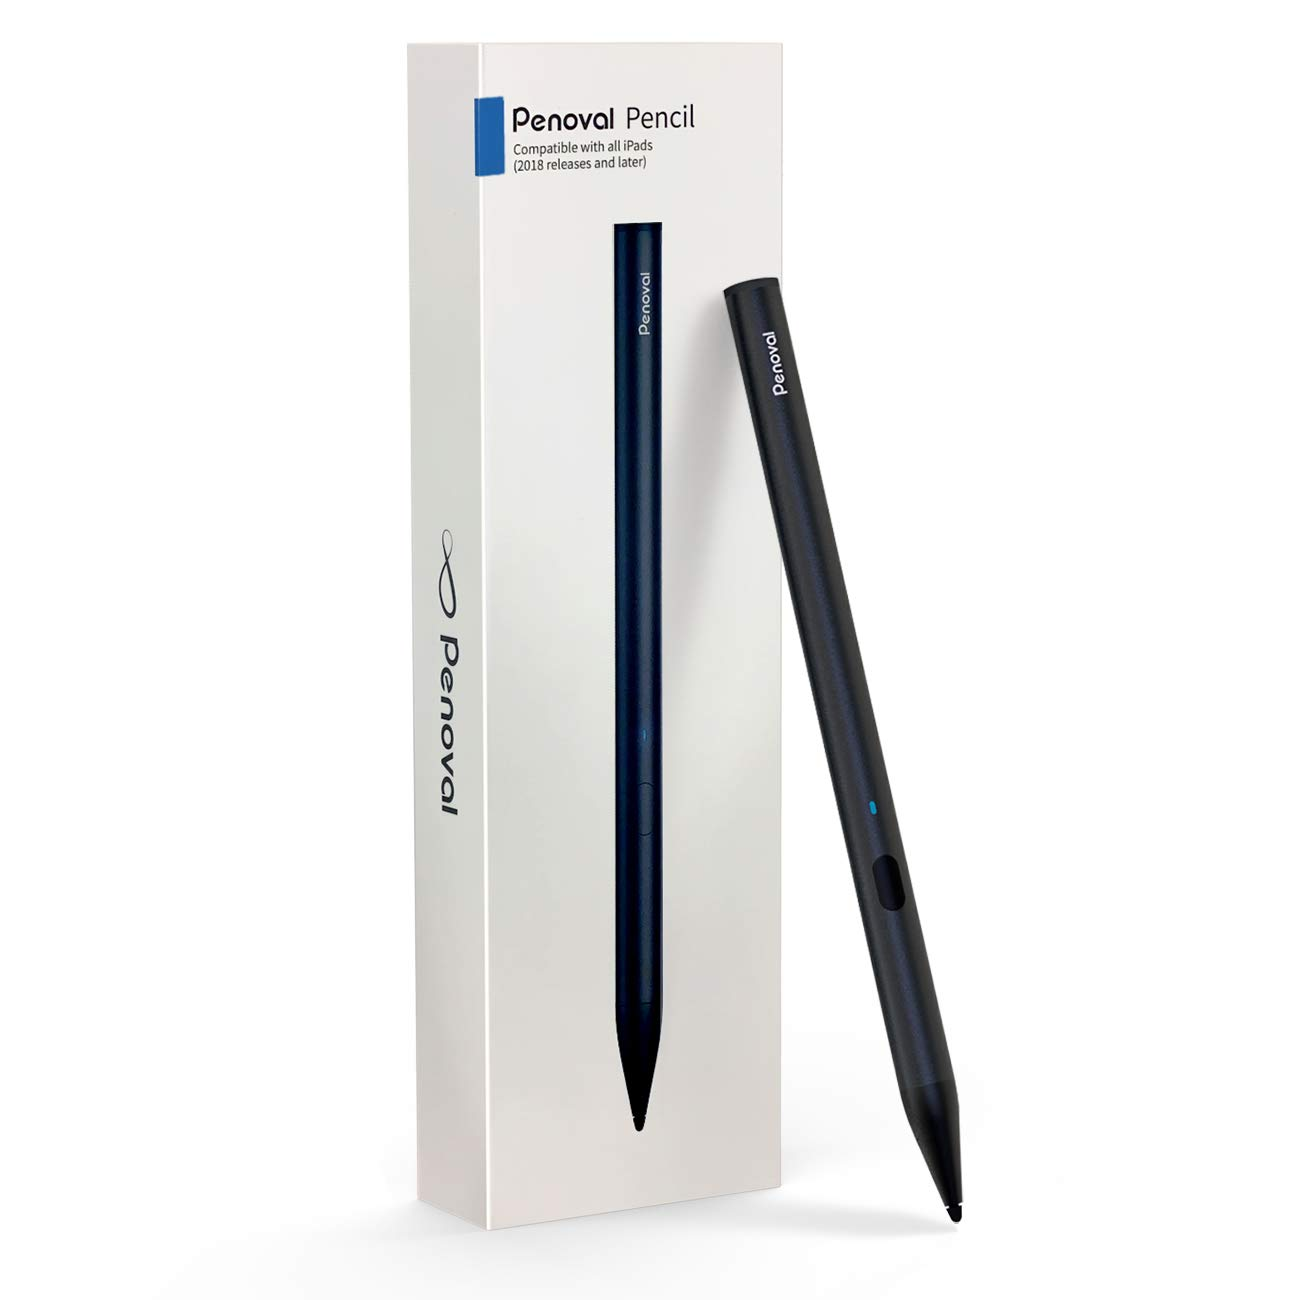 Stylus Pen for iPad 3rd Gen Palm Rejection 3rd Gen Penoval High-Precision Pencil for iPad 6th Gen iPad Air - White iPad Mini 5th Gen and IPad Pro